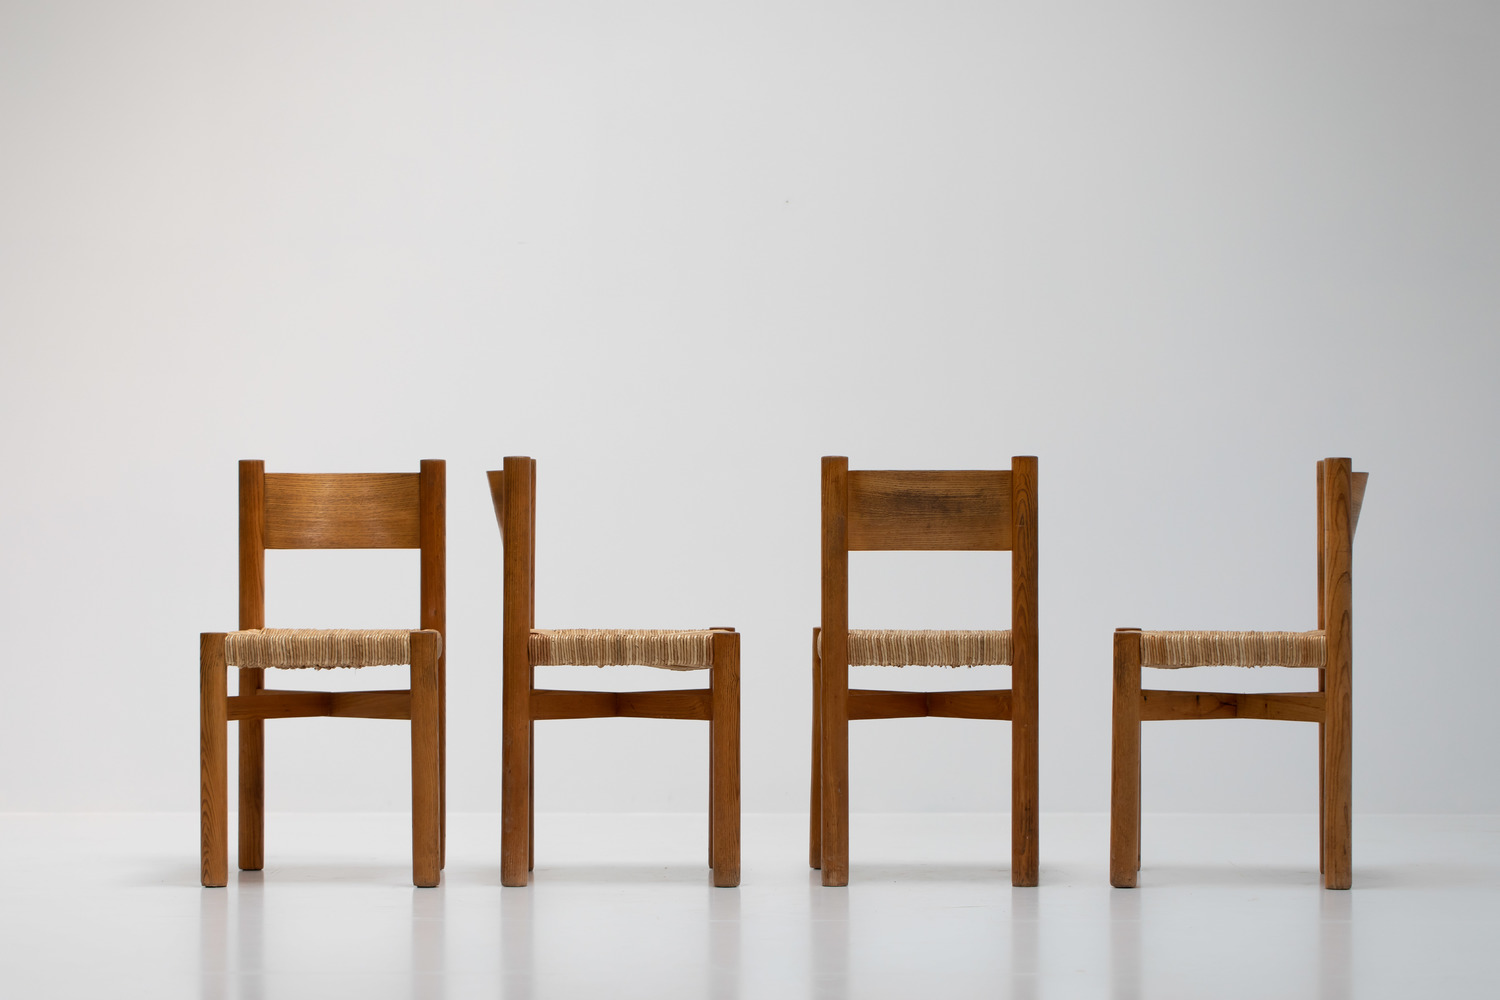 Set of 4 Meribel chairs by Charlotte Perriand